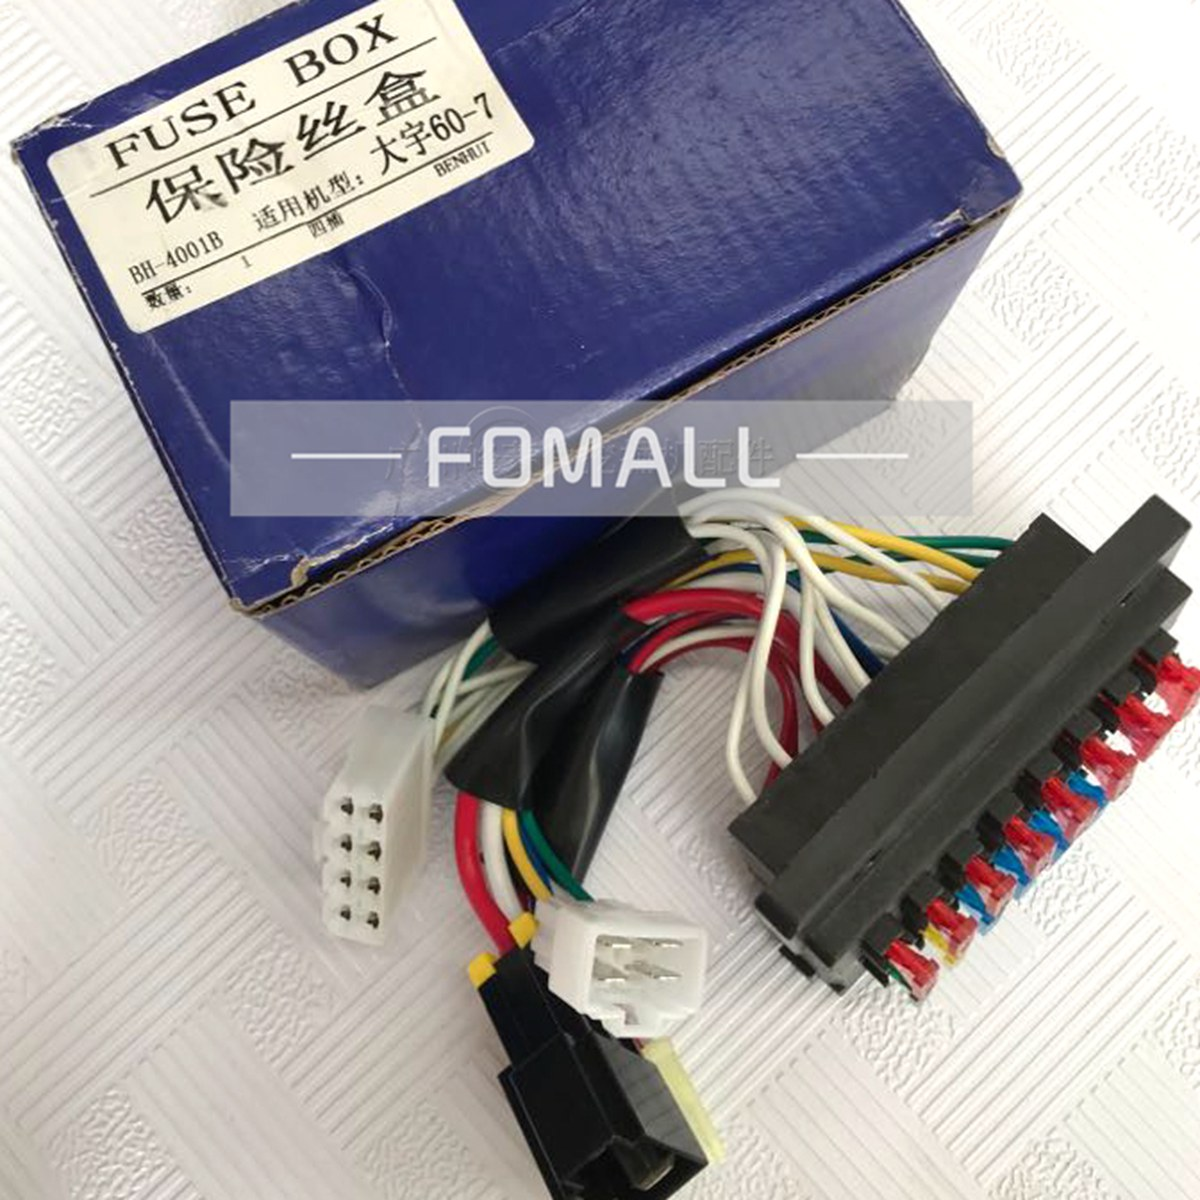 fuse box parts 1pcs fuse box assembly for daewoo doosan dh60 7 excavator parts 4  daewoo doosan dh60 7 excavator parts